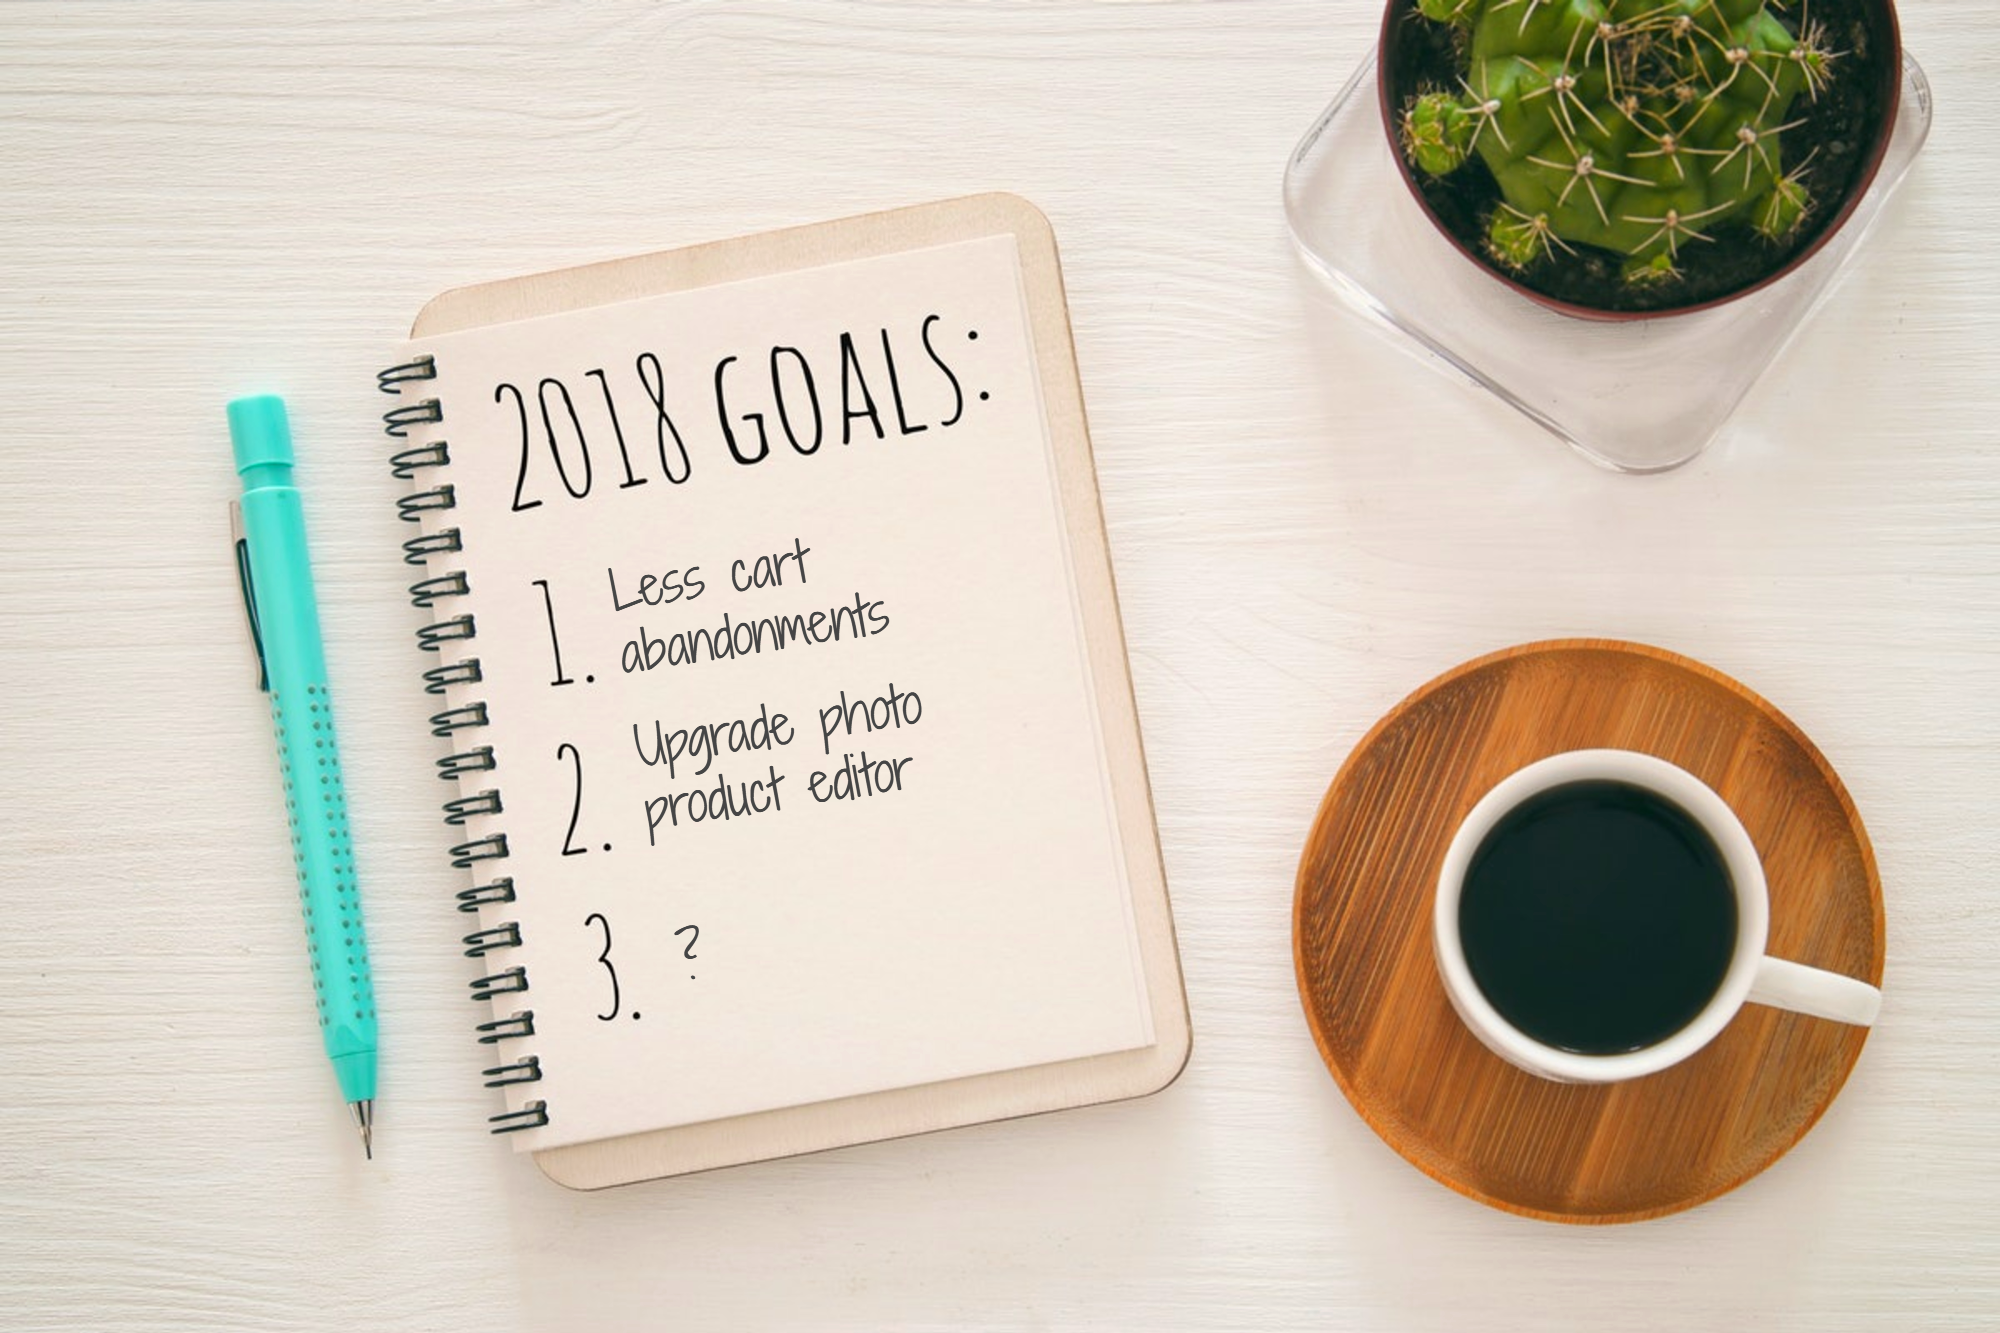 Photo product business goals for 2018